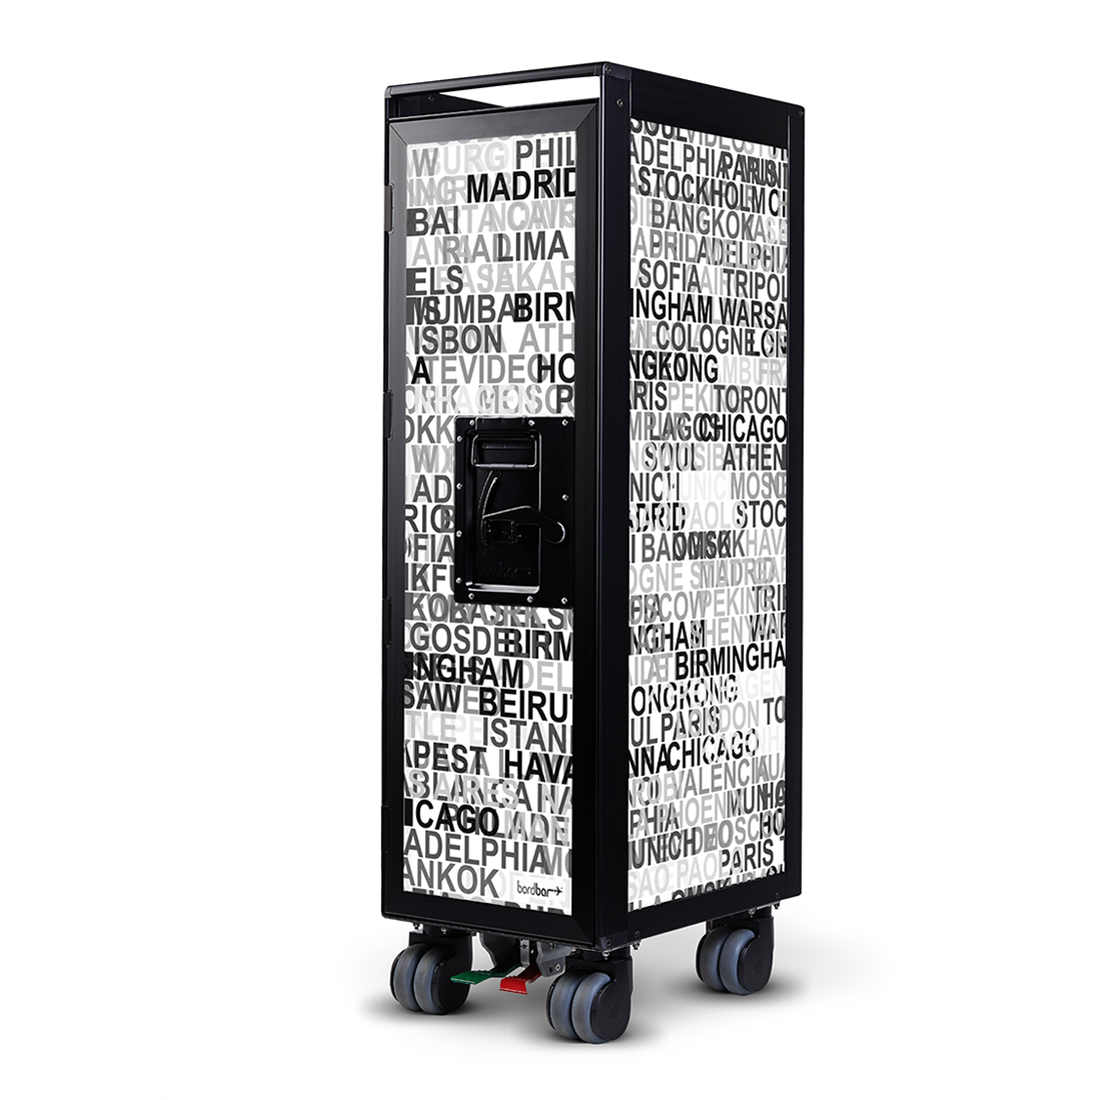 Bordbar Trolley - Black Frame (More Designs Available)